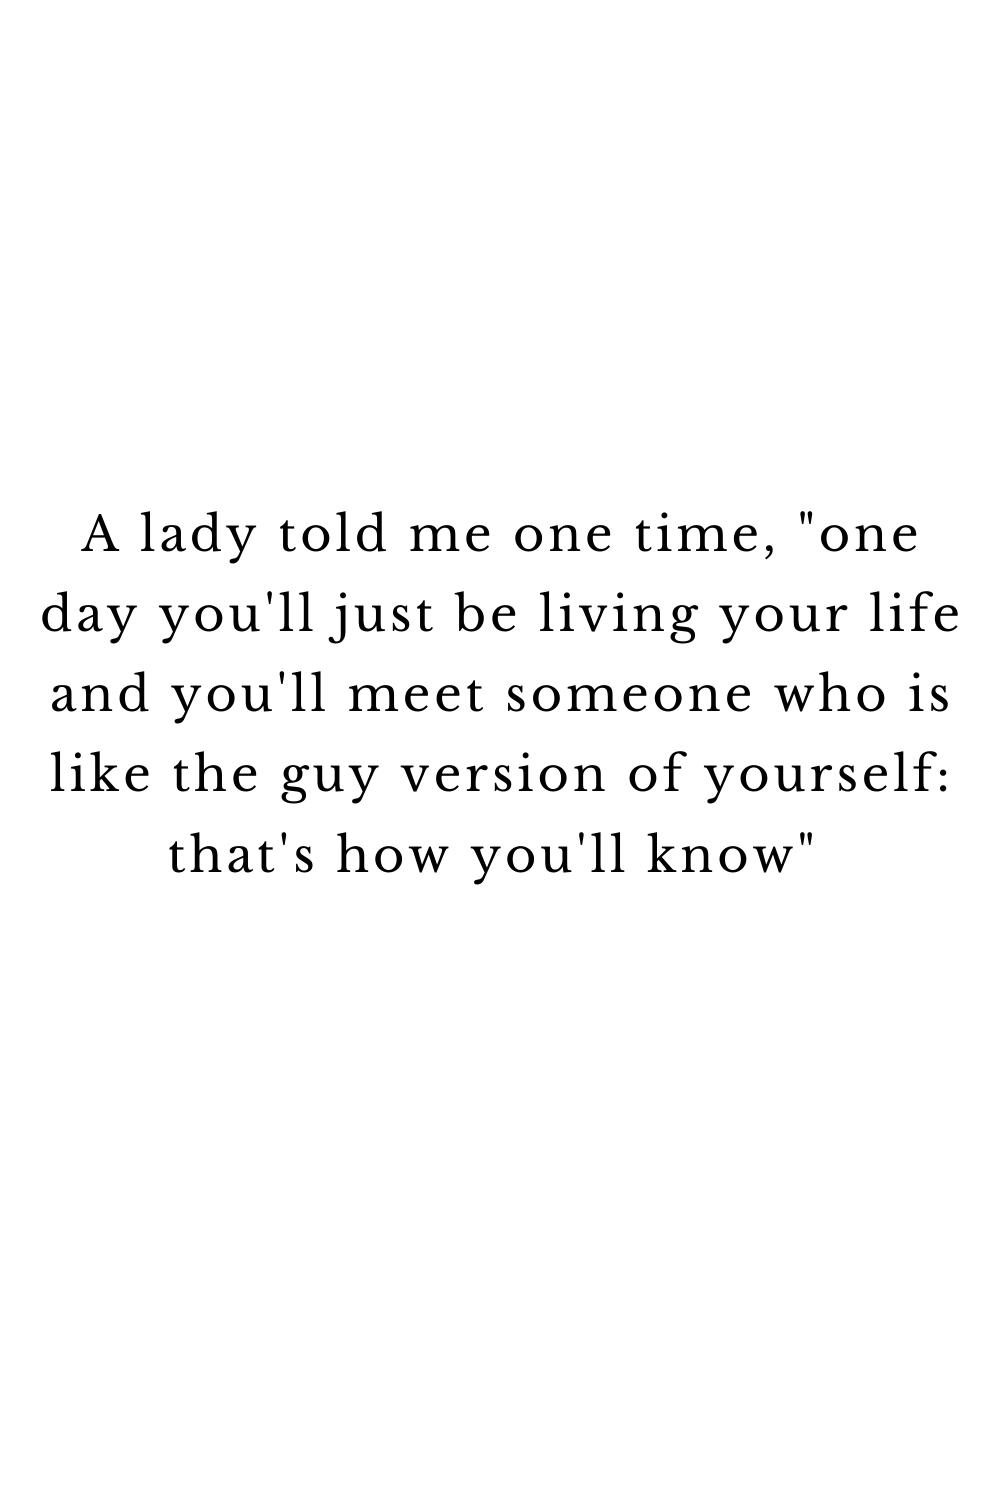 Inspirational Quotes True Quotes Strong Relationship Quotes Inspo Quotes